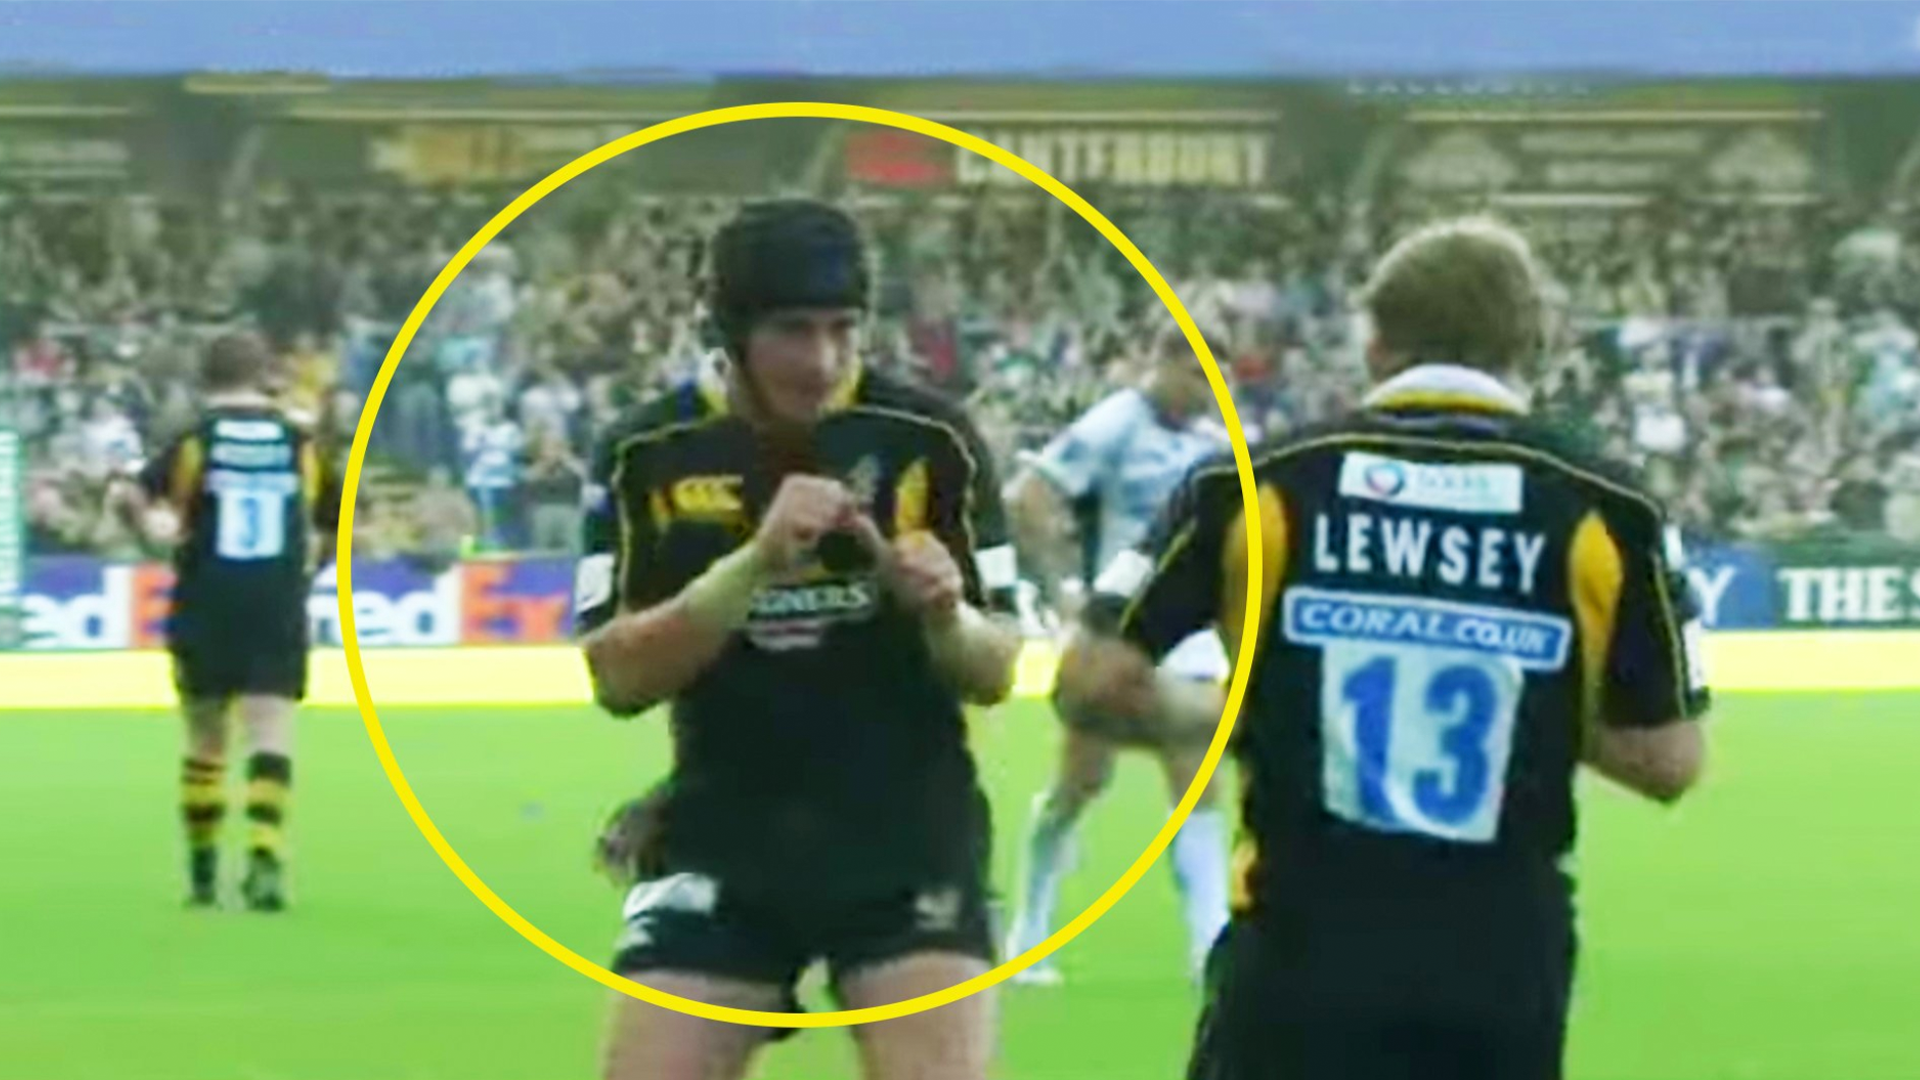 Teammates don't often fight on the rugby field but when they do, it's EXPLOSIVE